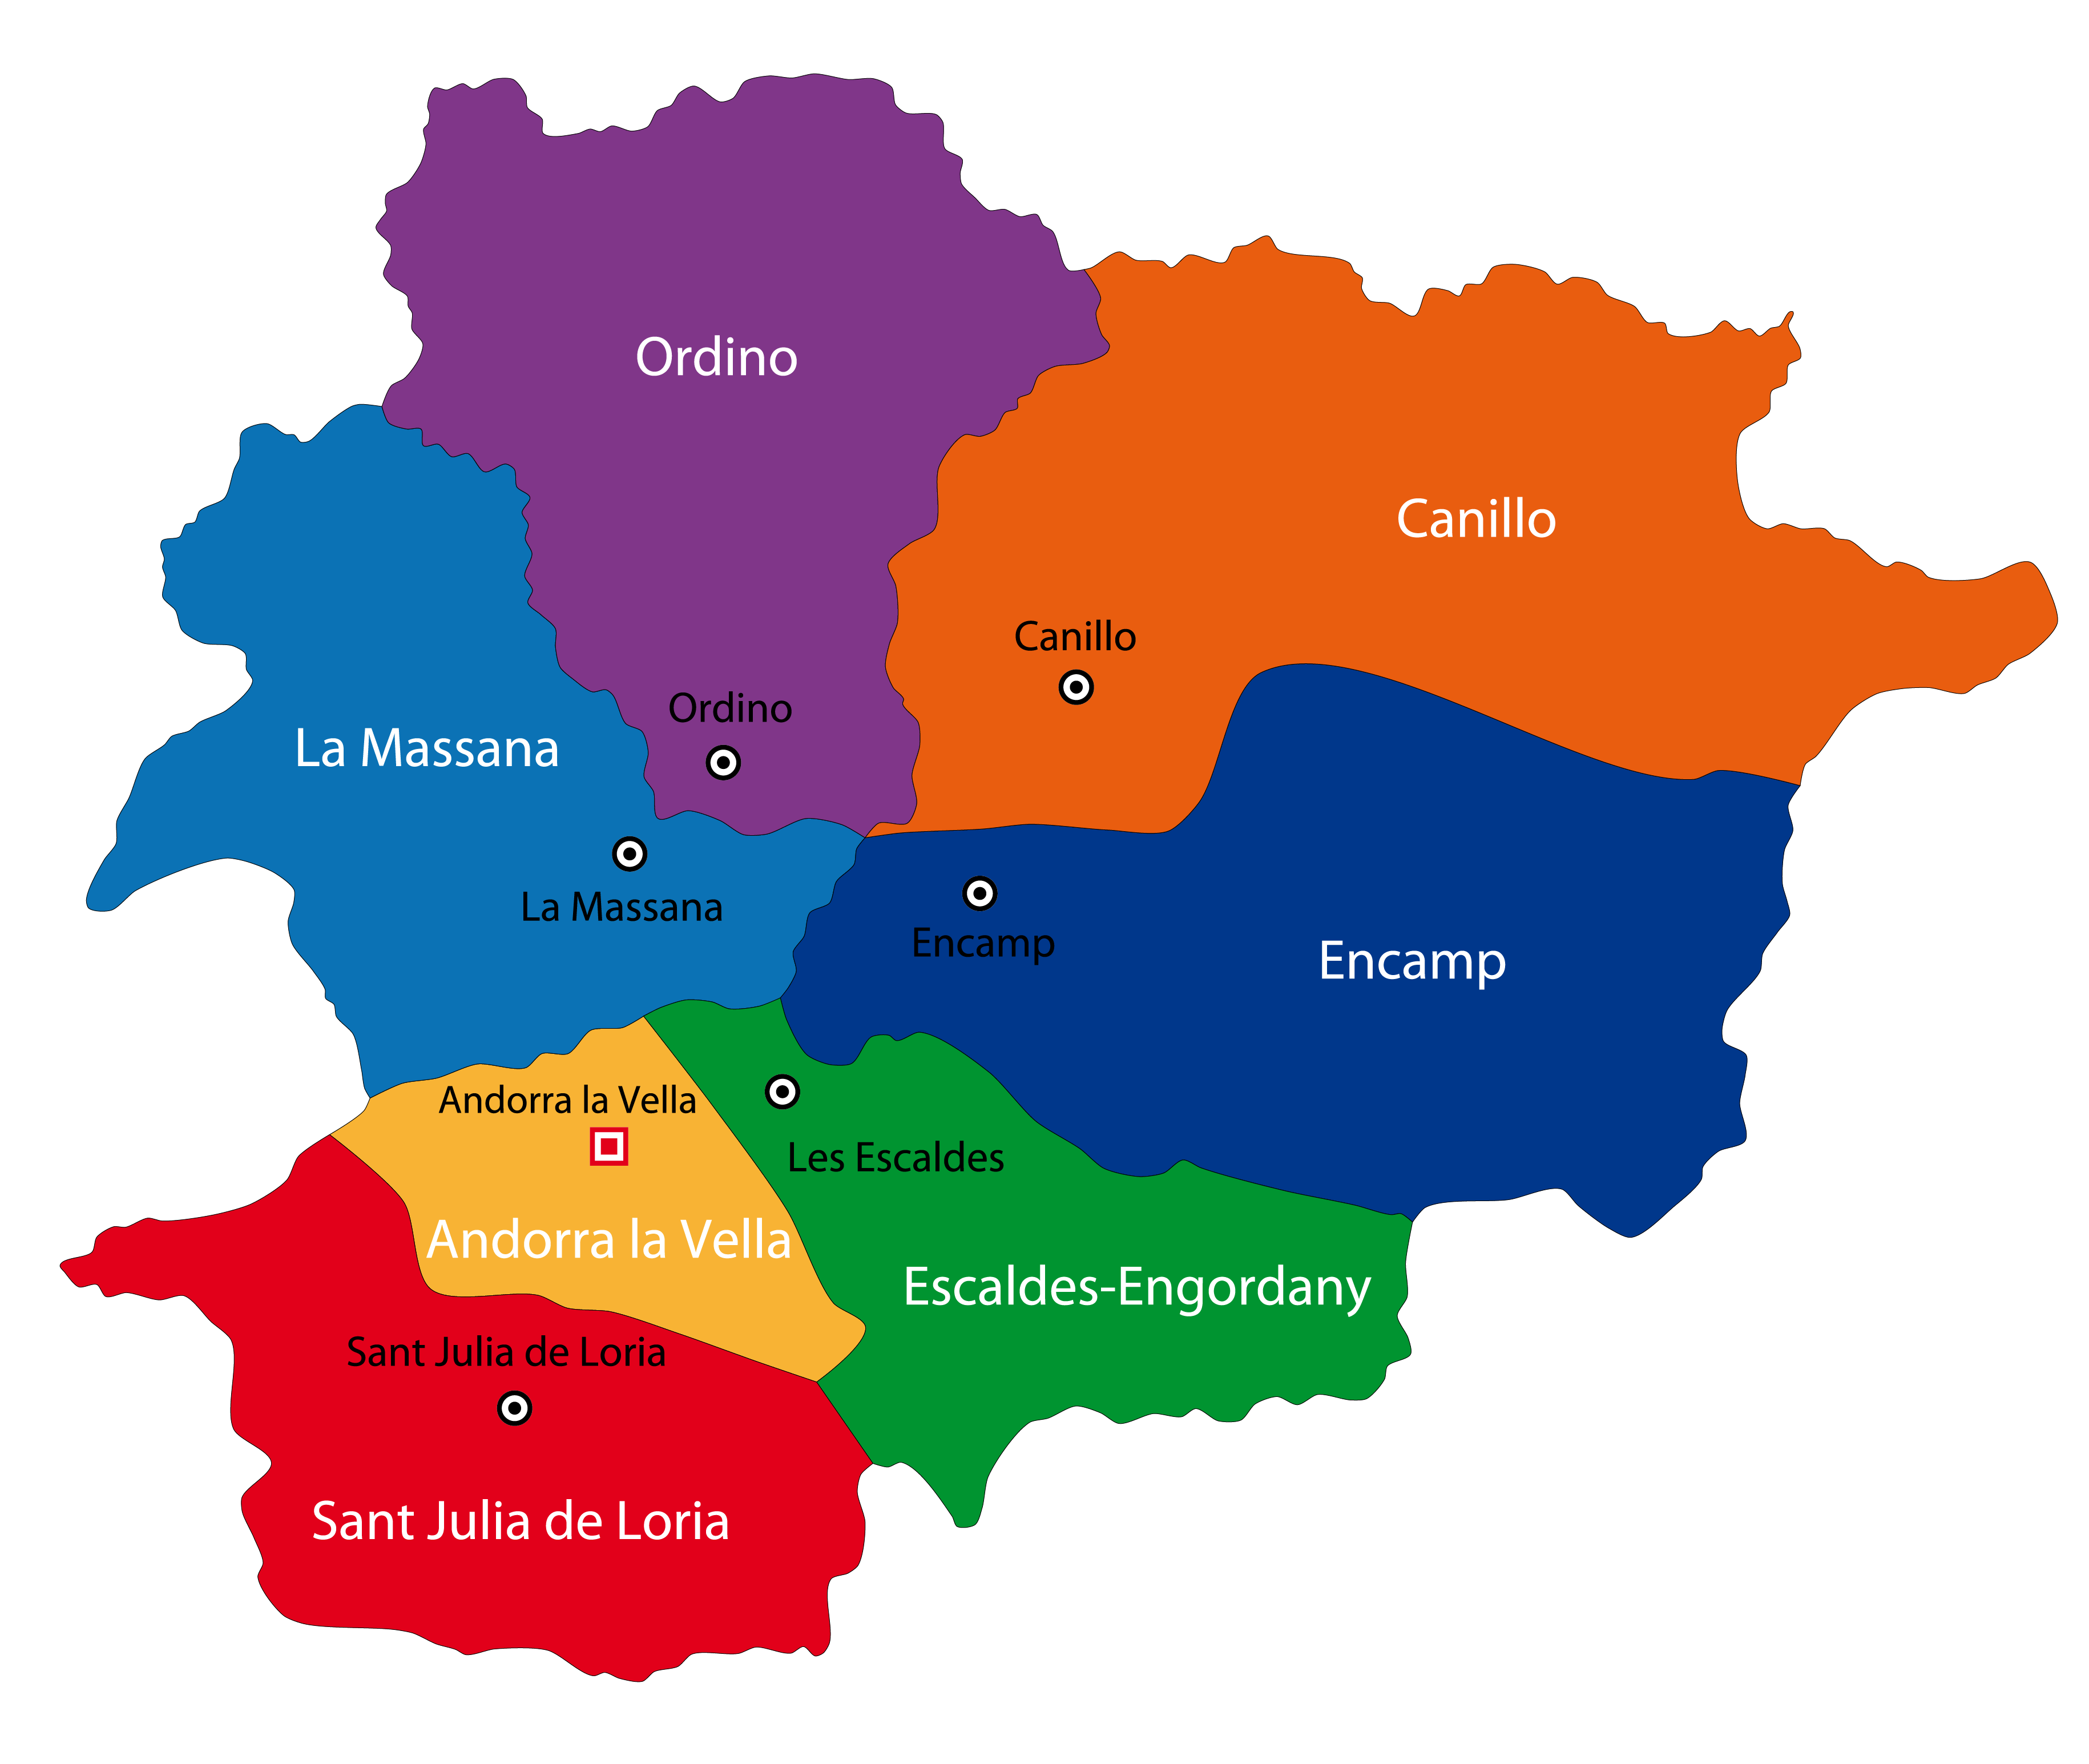 Political Map of Andorra showing its 7 parishes and the capital city of Andorra la Vella